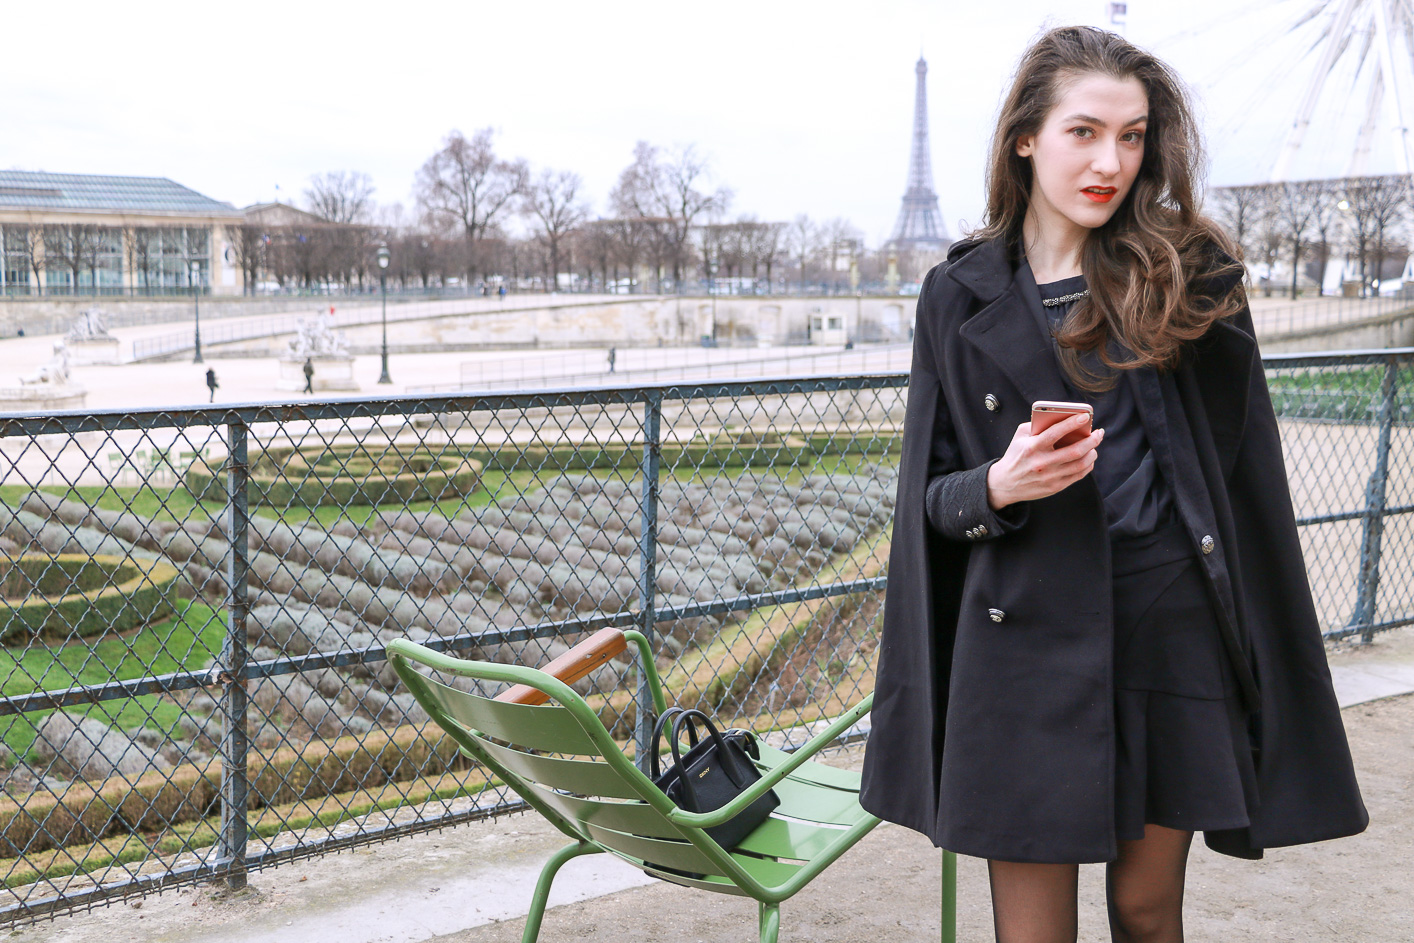 Fashion Blogger Veronika Lipar of Brunette from Wall Street sharing how to wear chic black ruffled mini skirt, sexy black tights and white sneakers as a Parisian